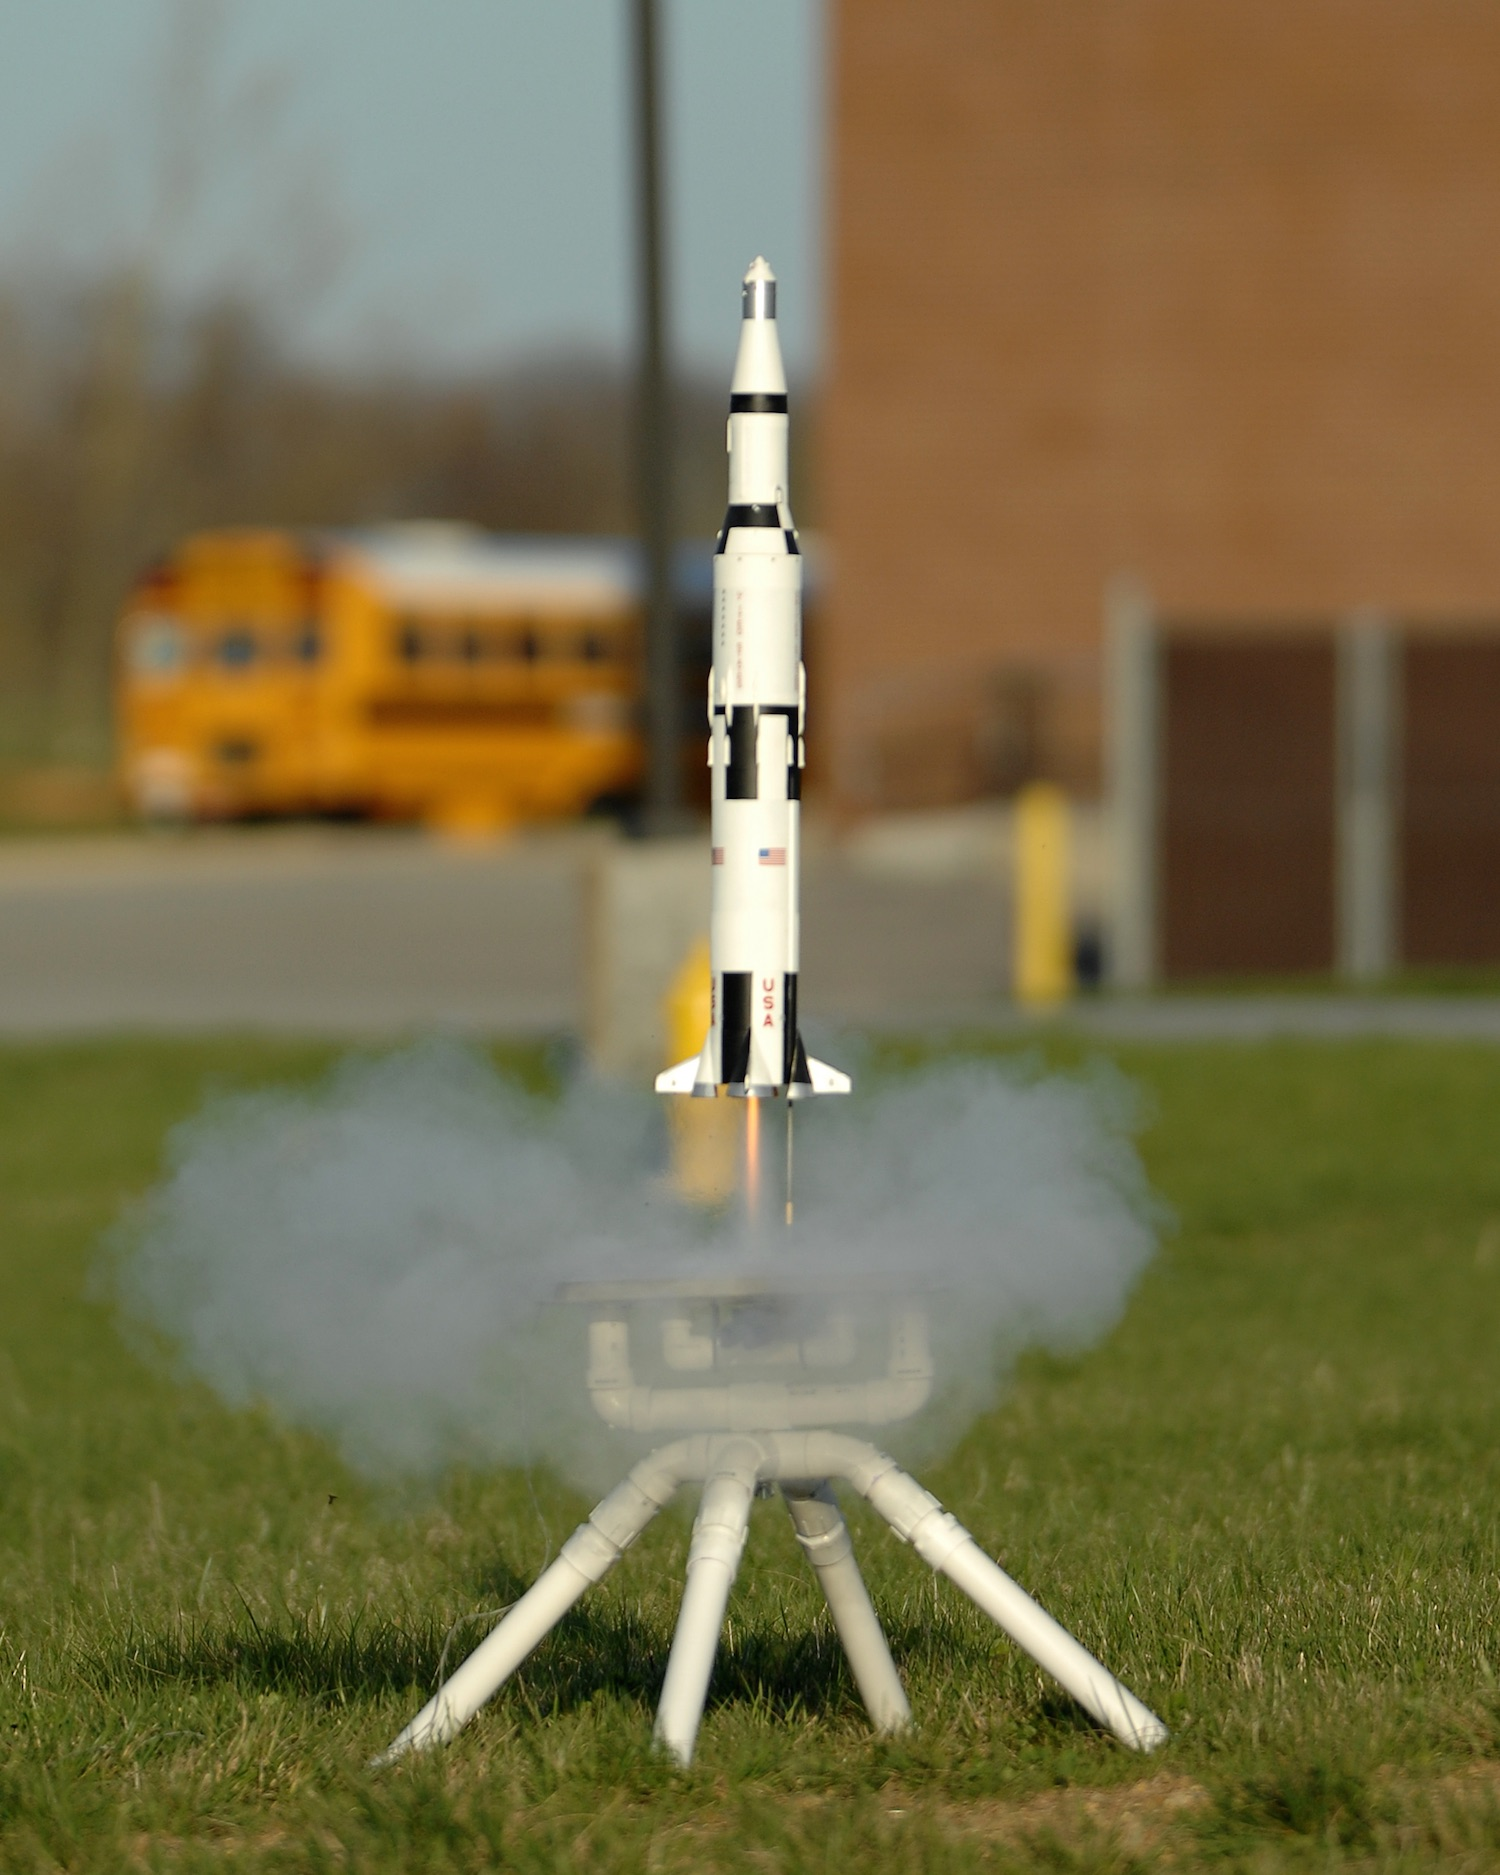 A sixty year focus on safety has made model rocketry an incredibly safe hobby for adults and children alike. Credit:  Joe Schneid CC-BY-SA-3.0 via Wikipedia